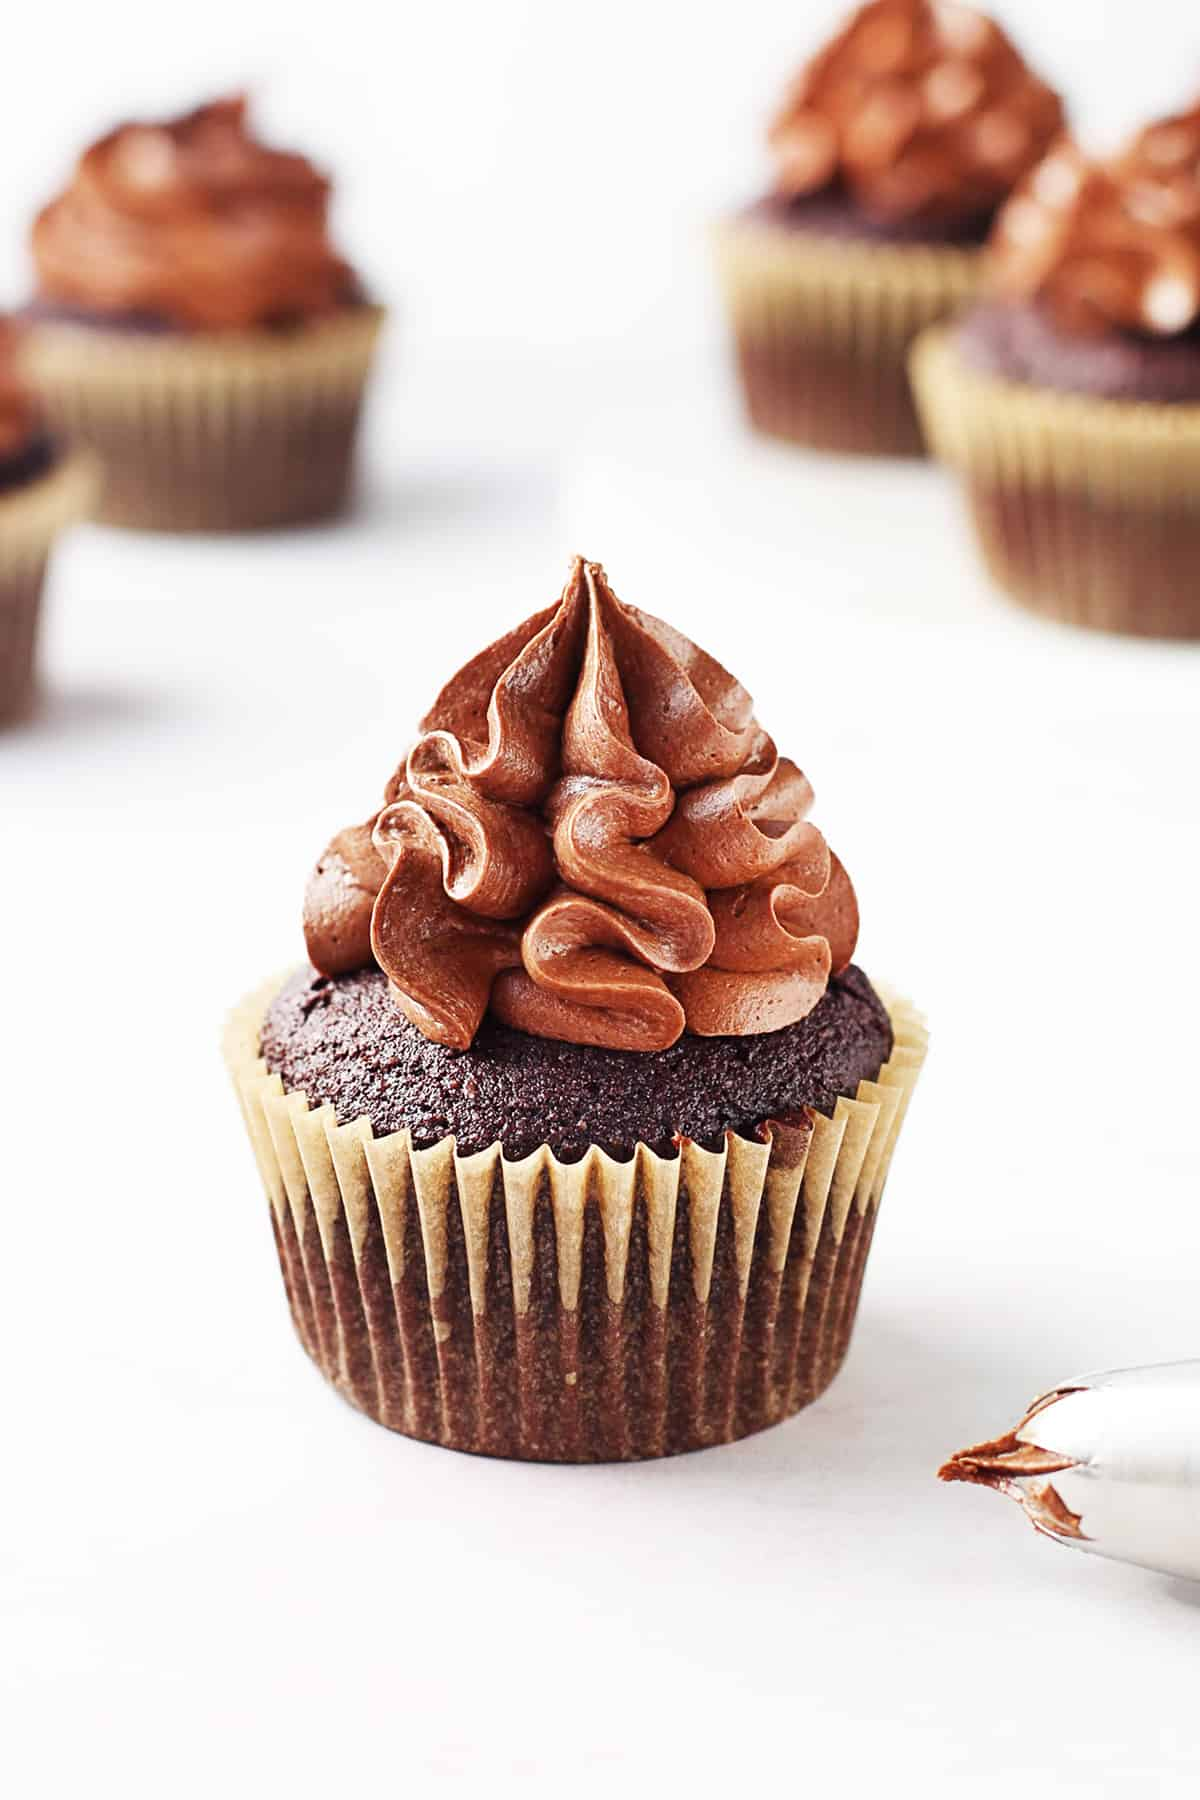 A close up of a gluten free chocolate cupcake with piped frosting on top.